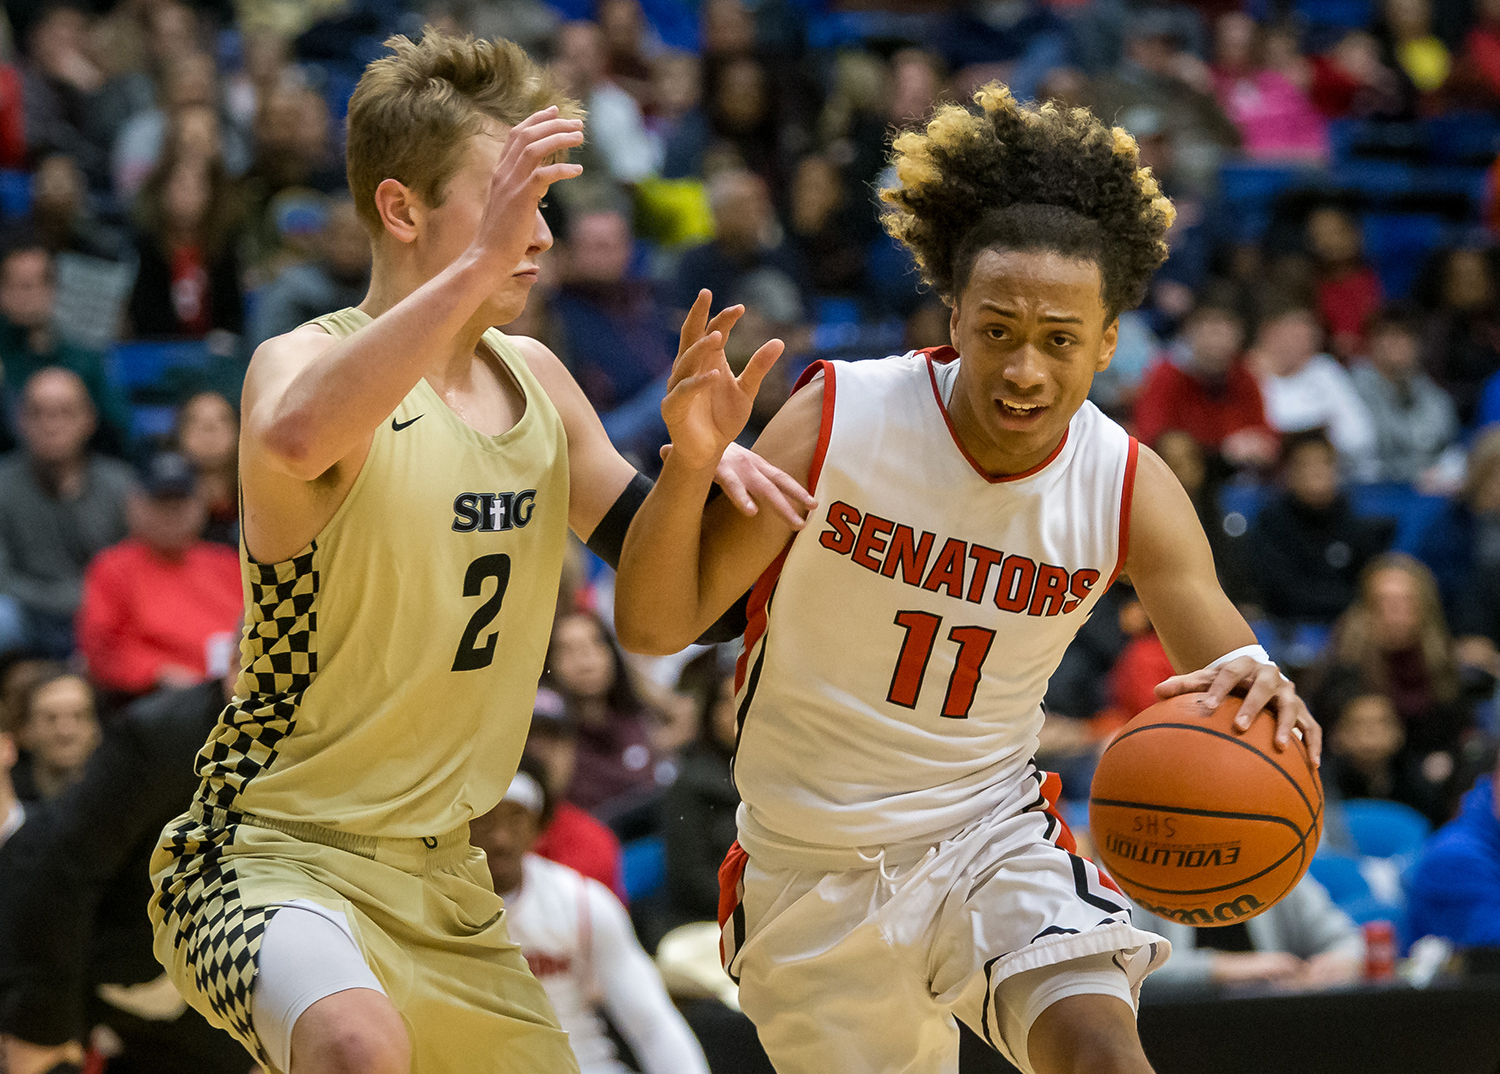 Springfield's Zaire Harris (11) drives in to the basket against Sacred Heart-Griffin's Joe Gustafson (2) in the fourth quarter on opening night of the Boys City Tournament at the Bank of Springfield Center, Wednesday, Jan. 16, 2019, in Springfield, Ill. [Justin L. Fowler/The State Journal-Register]